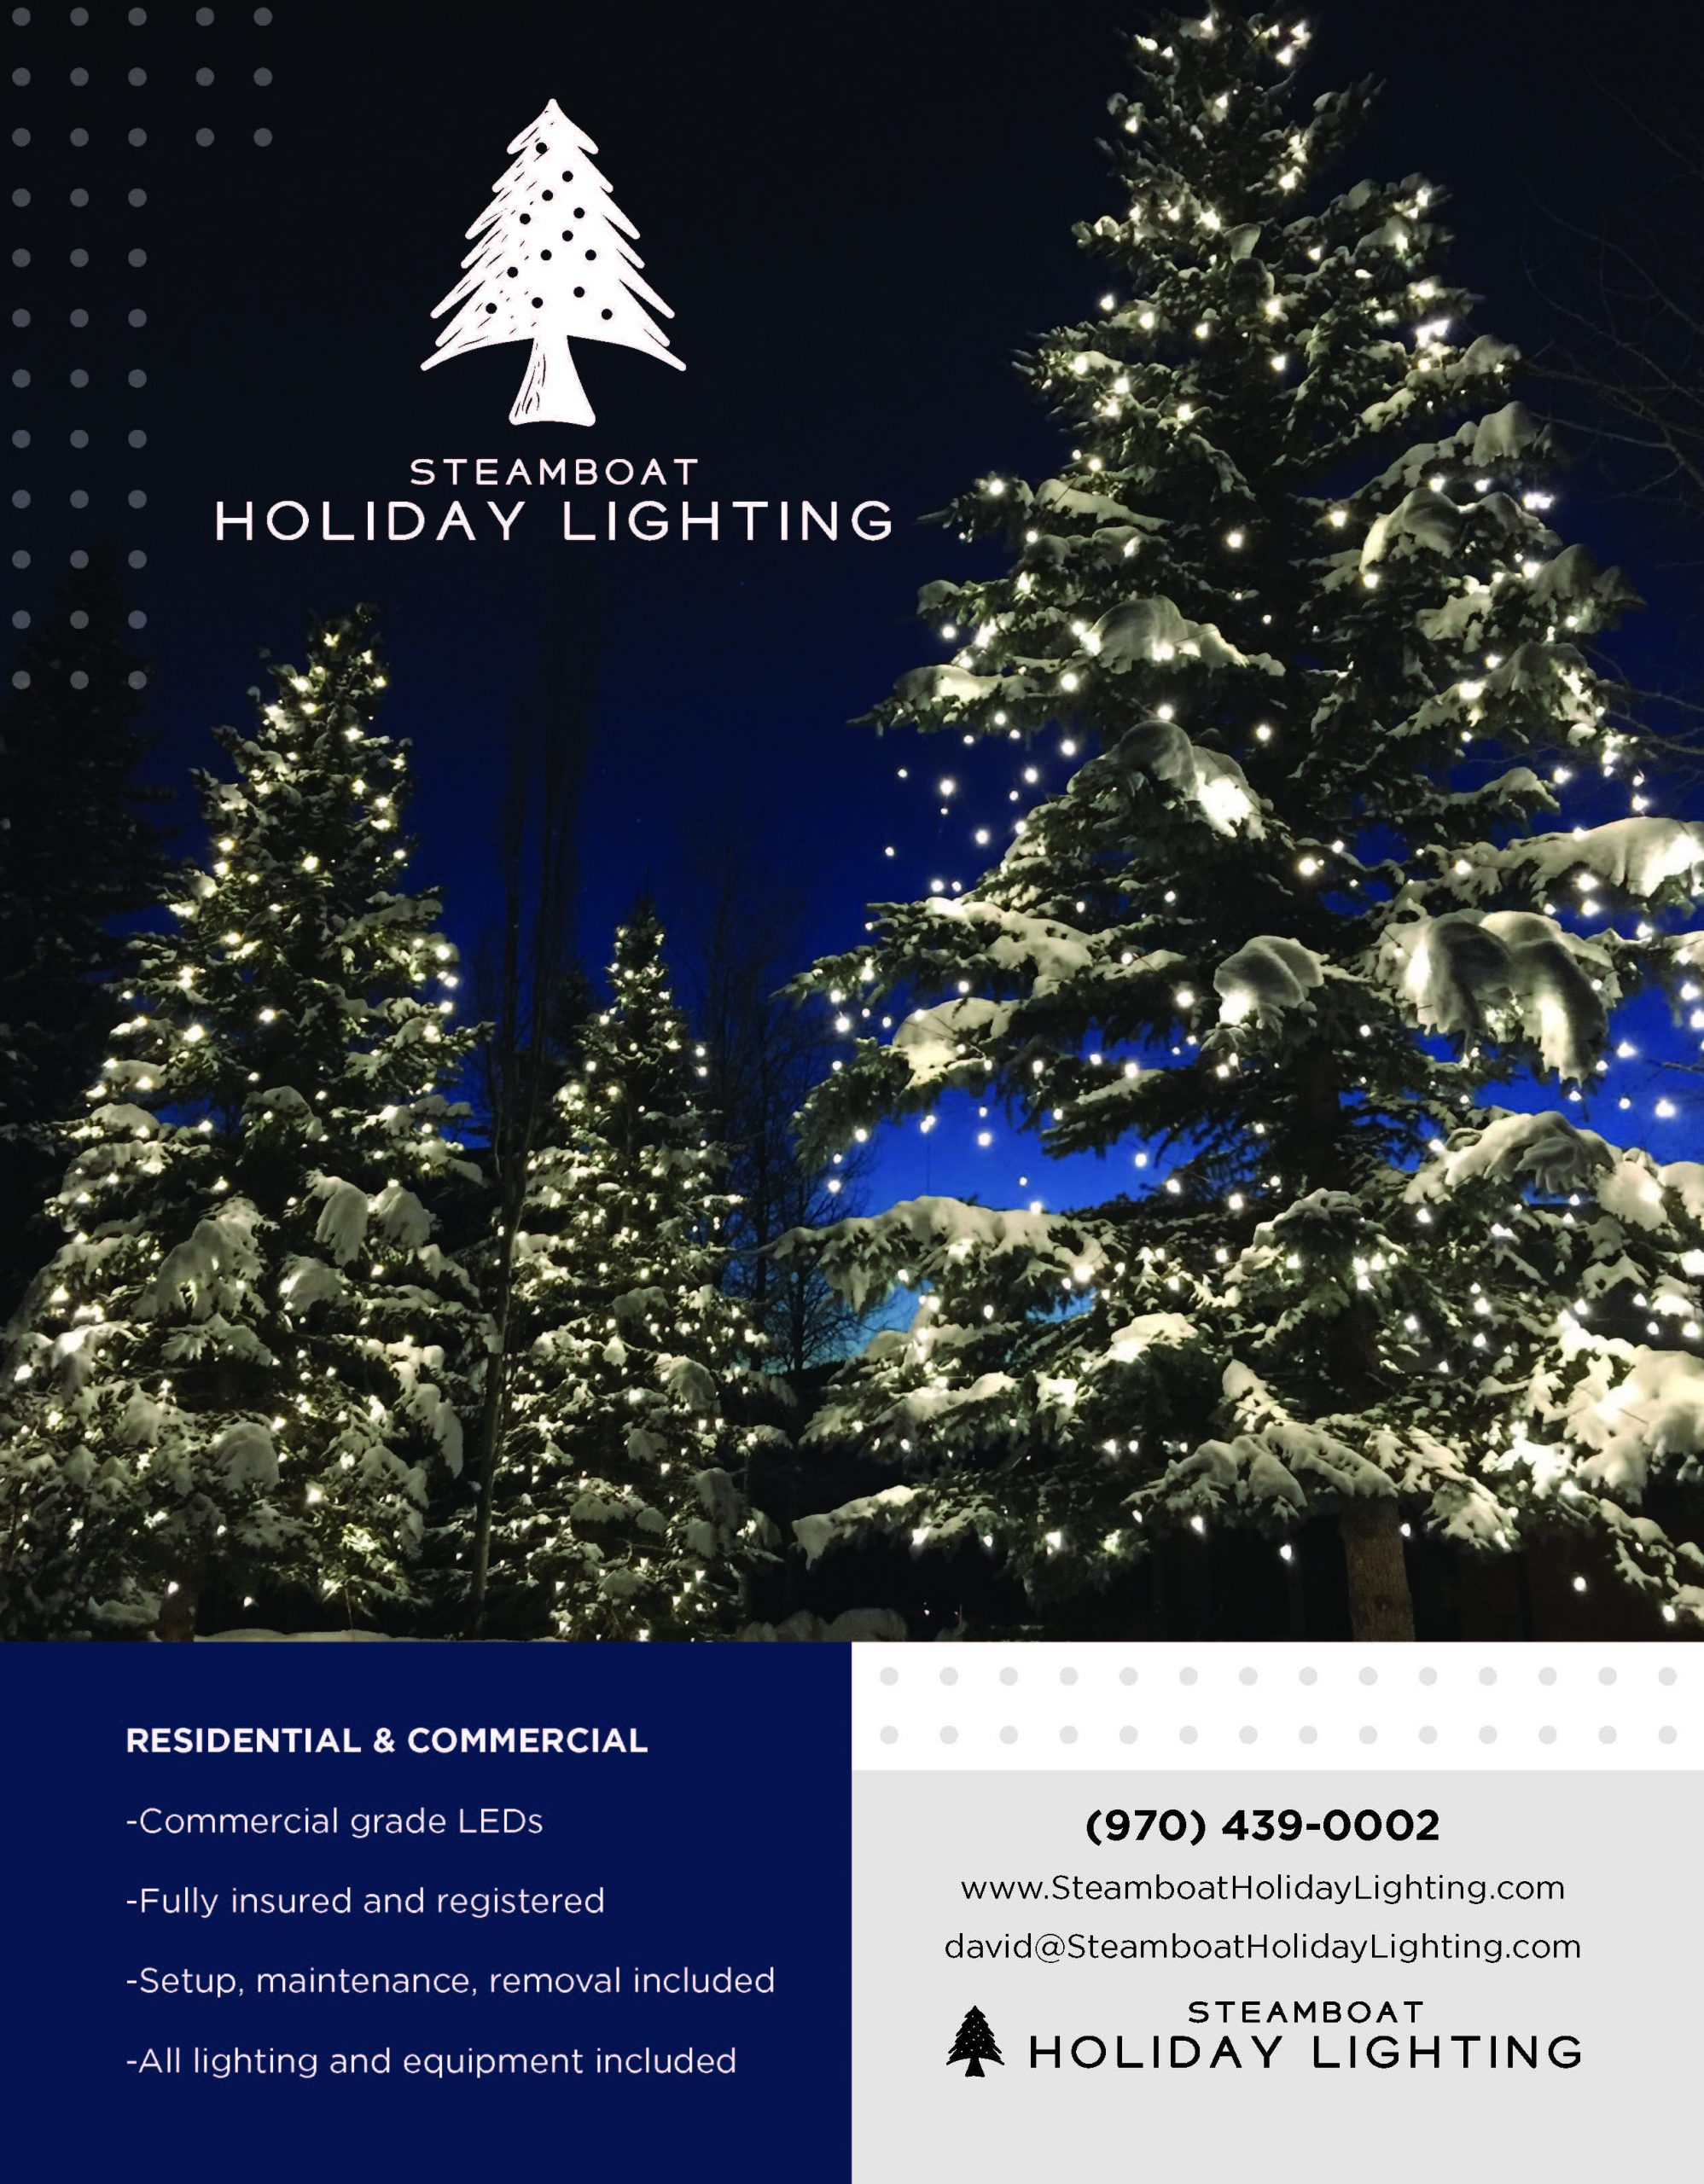 ad for Steamboat Holiday Lighting